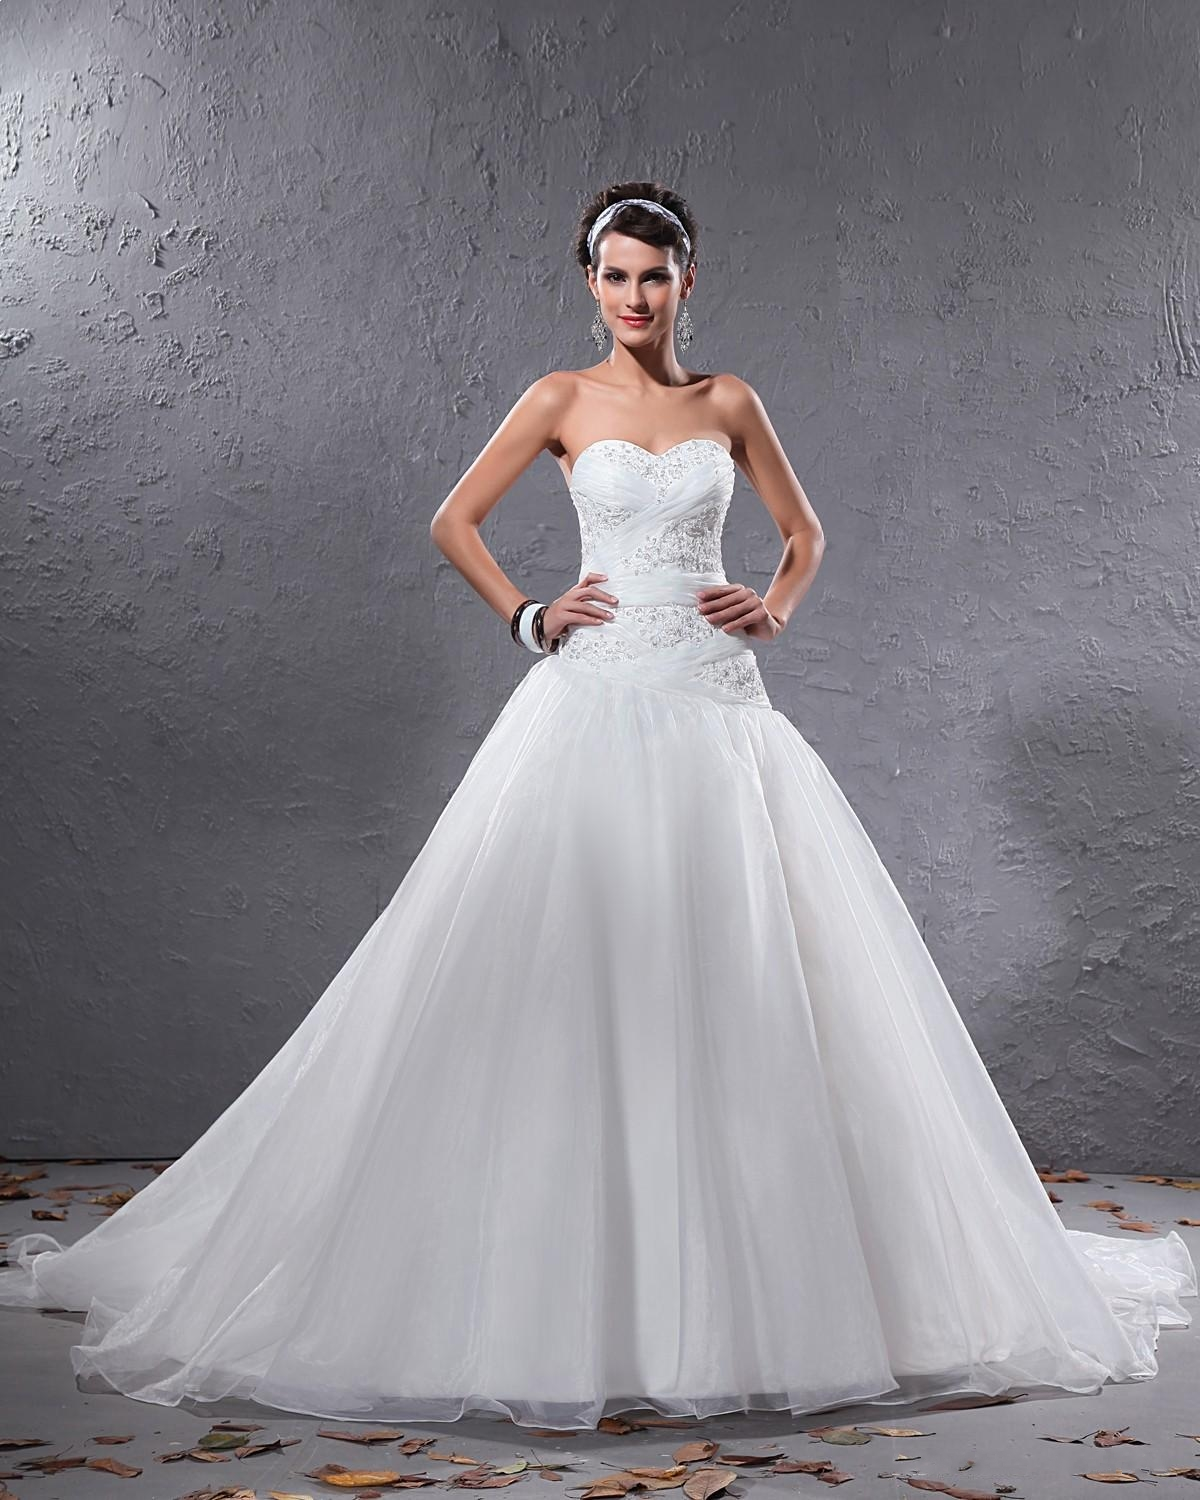 Wedding White Dresses: White Wedding Dress